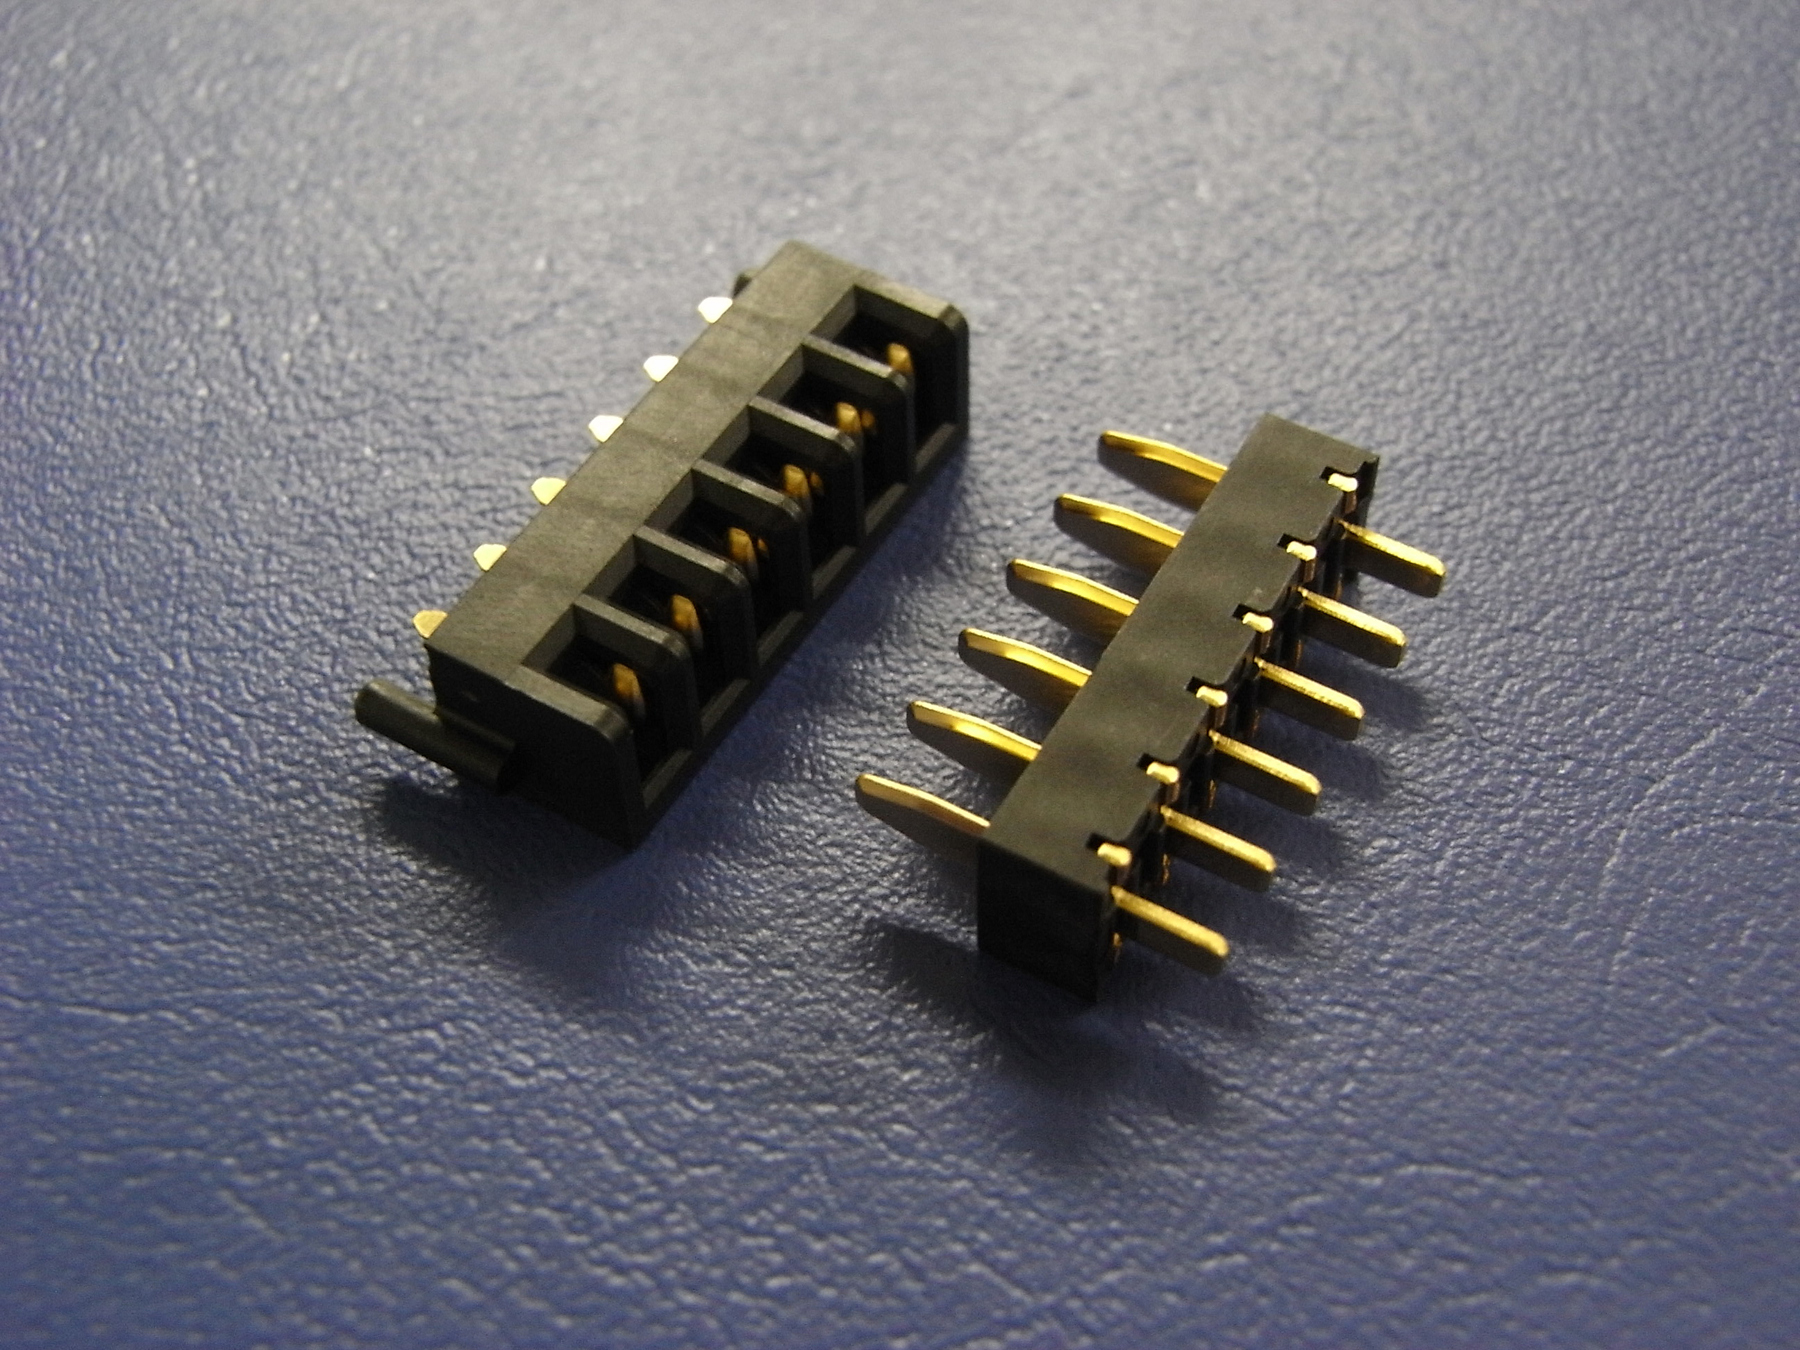 Two-Piece Battery Connector from Yokowo Provides Reliability in ...